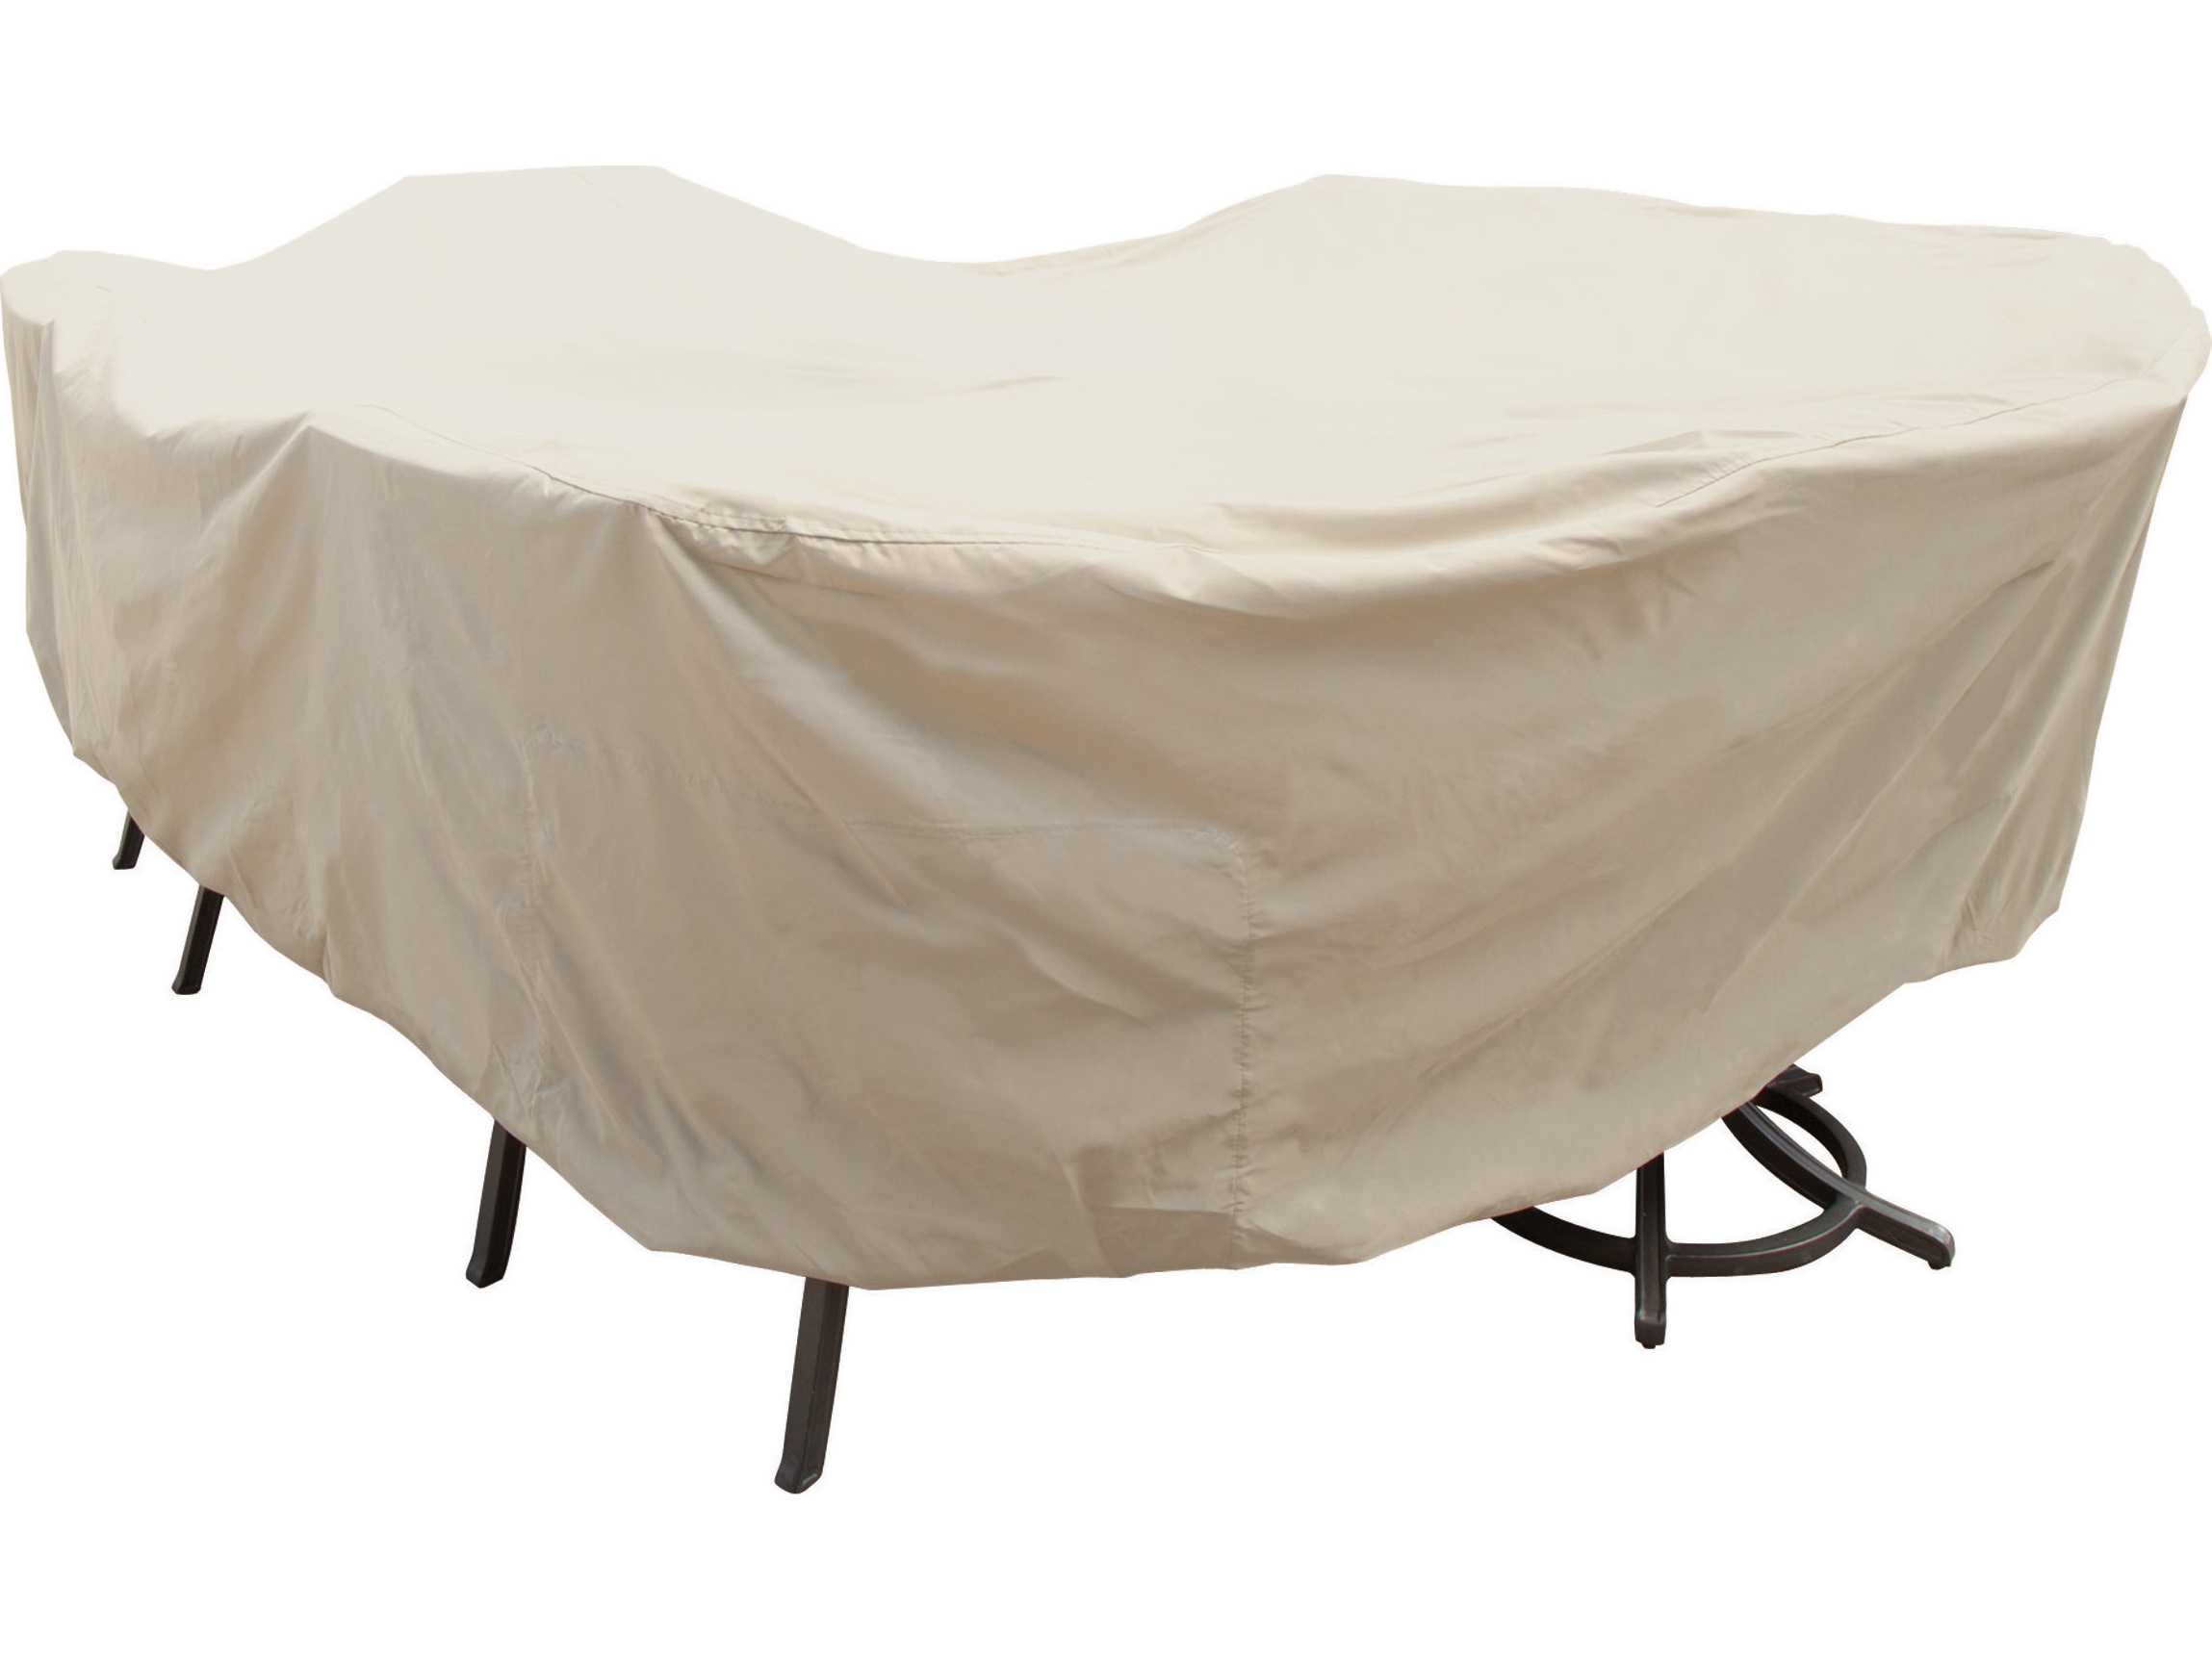 Treasure garden x large oval rectangle table chairs cover cp699 for Treasure garden patio furniture covers